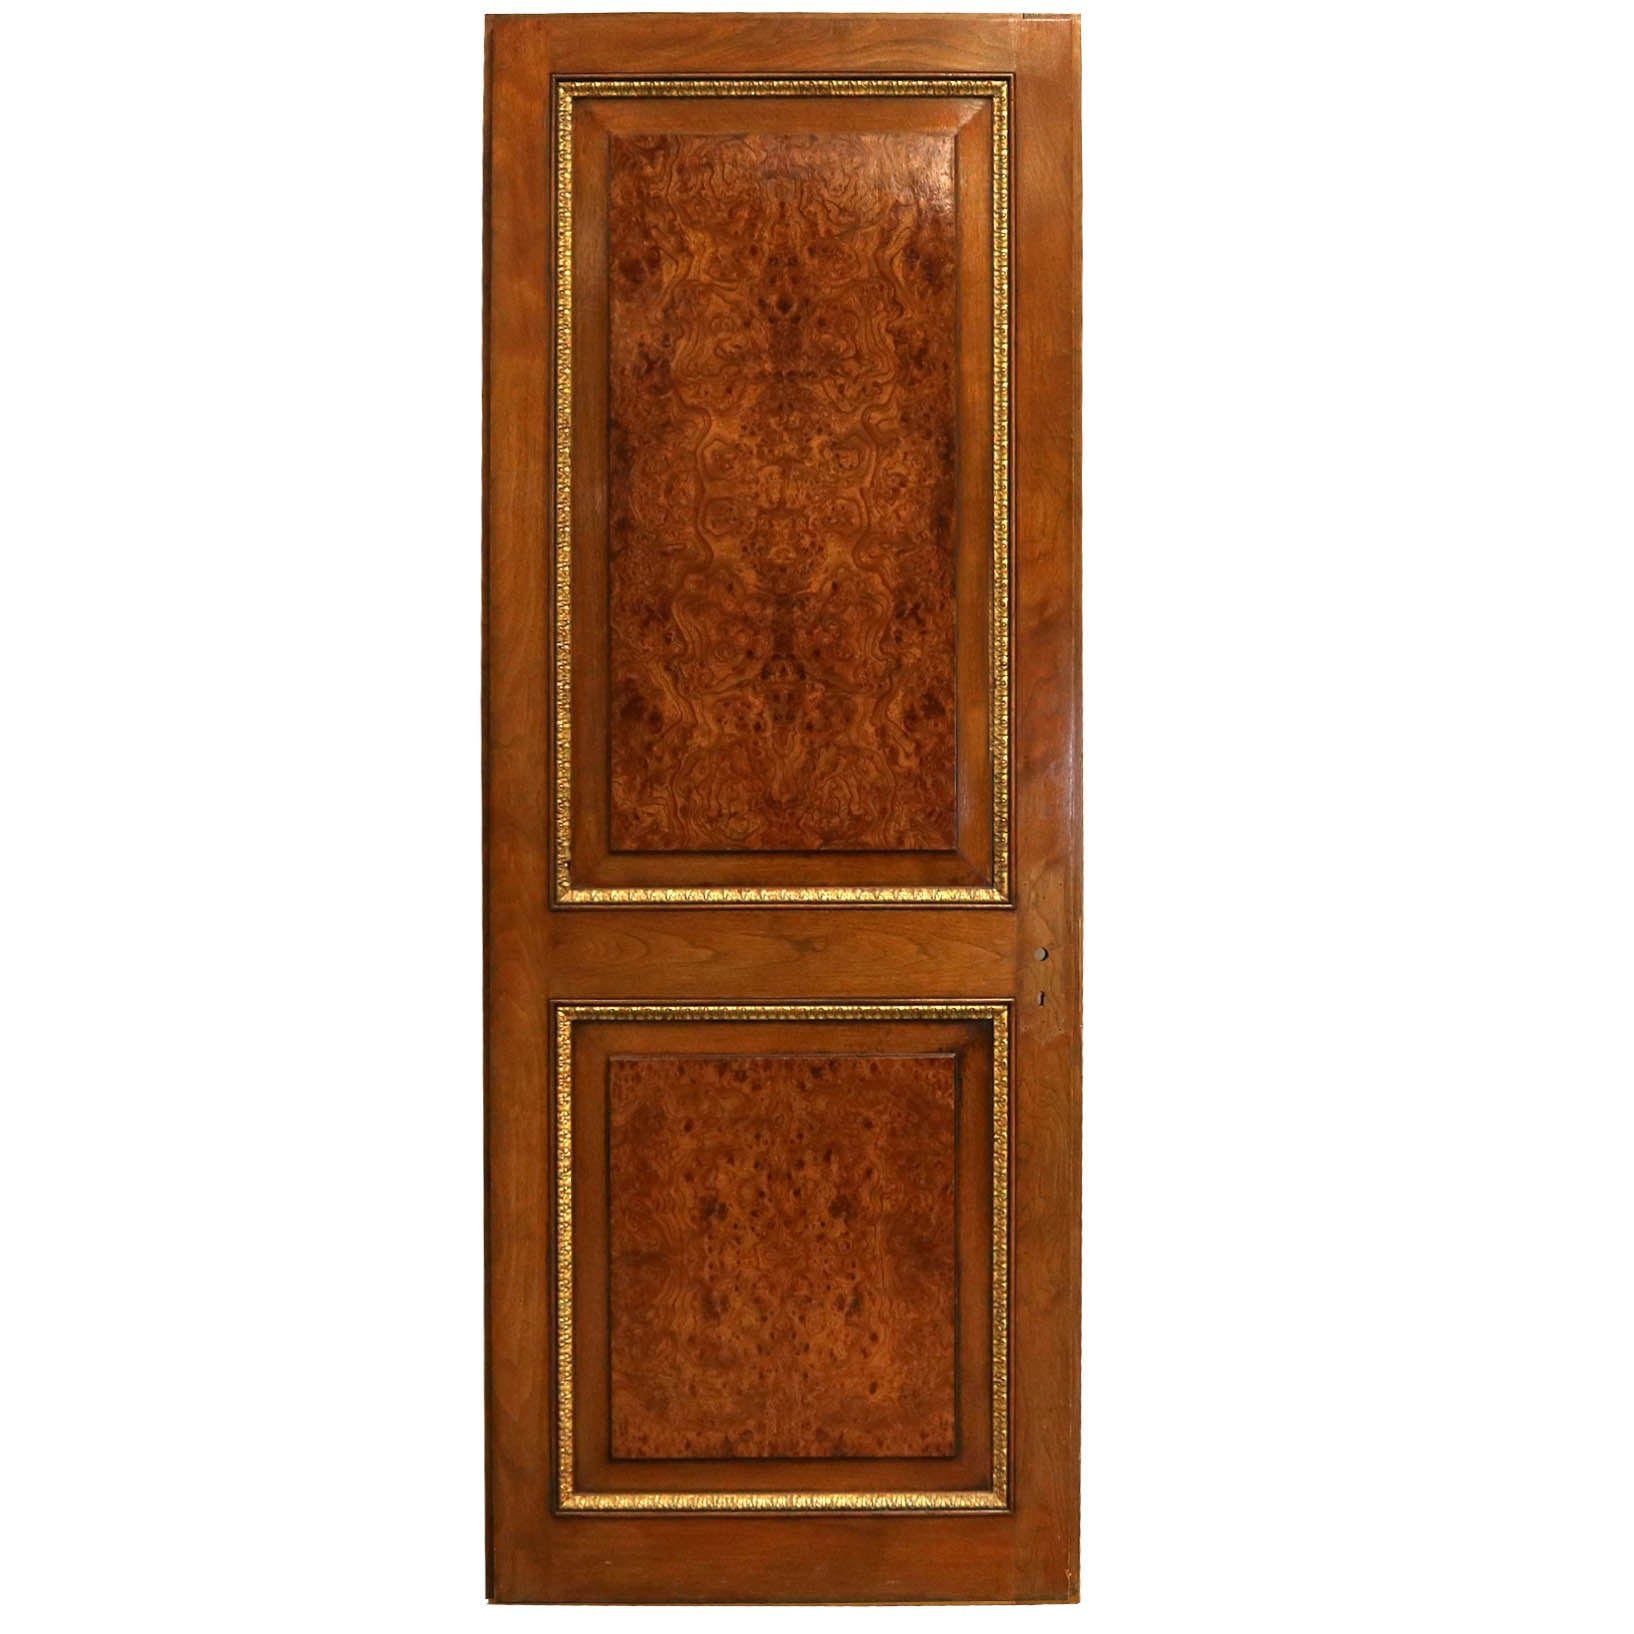 Walnut and Tulip Wood Door - 221cm x 83cm